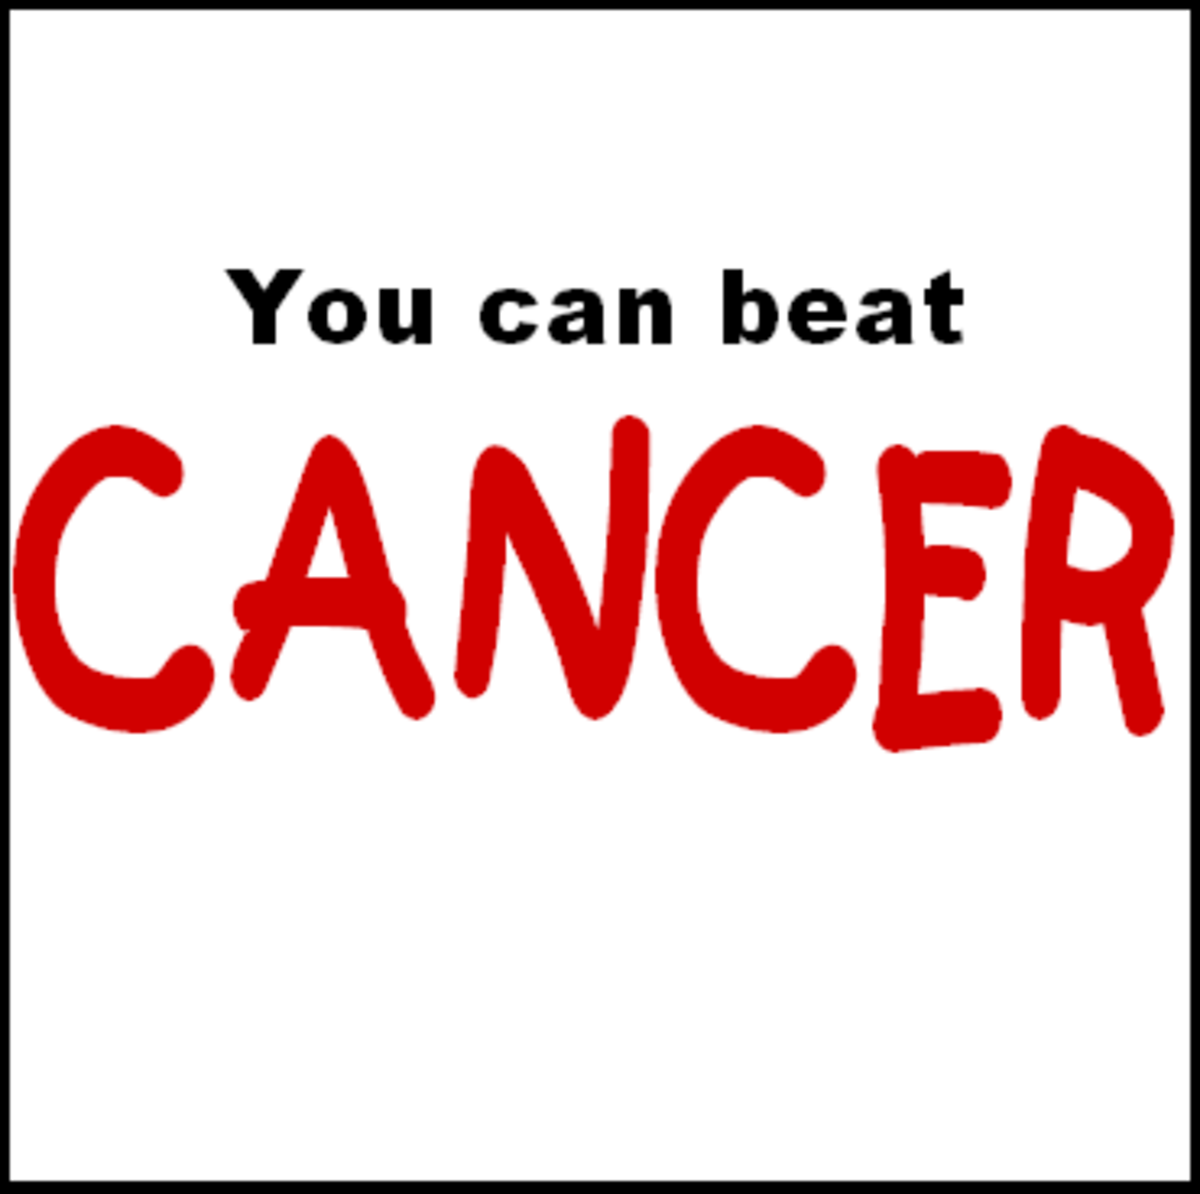 You can beat cancer.